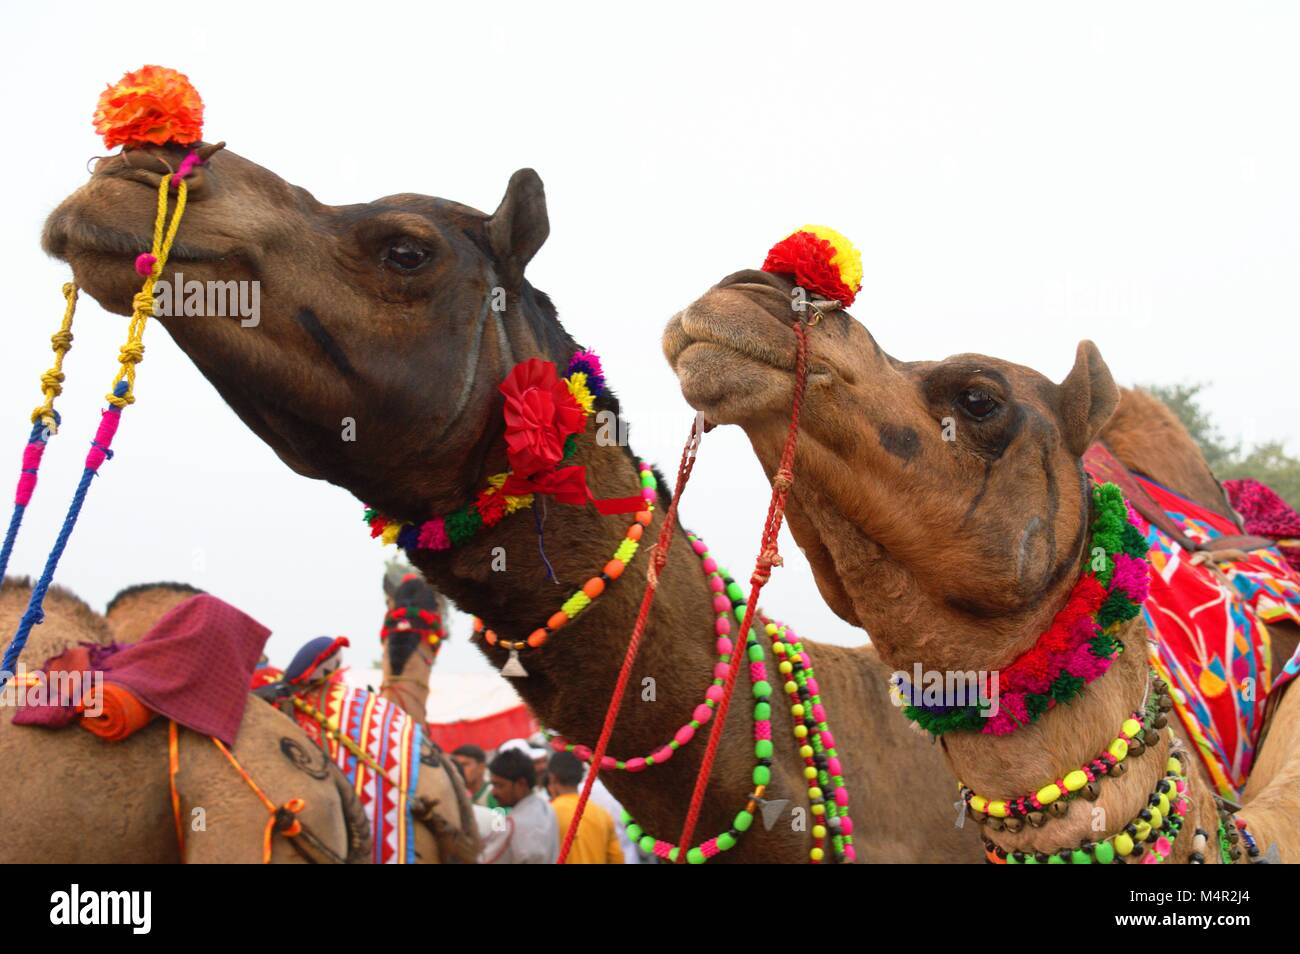 Two camels decorated for Pushkar's annual camel fair. this fair is world's largest camel fair, which is - Stock Image